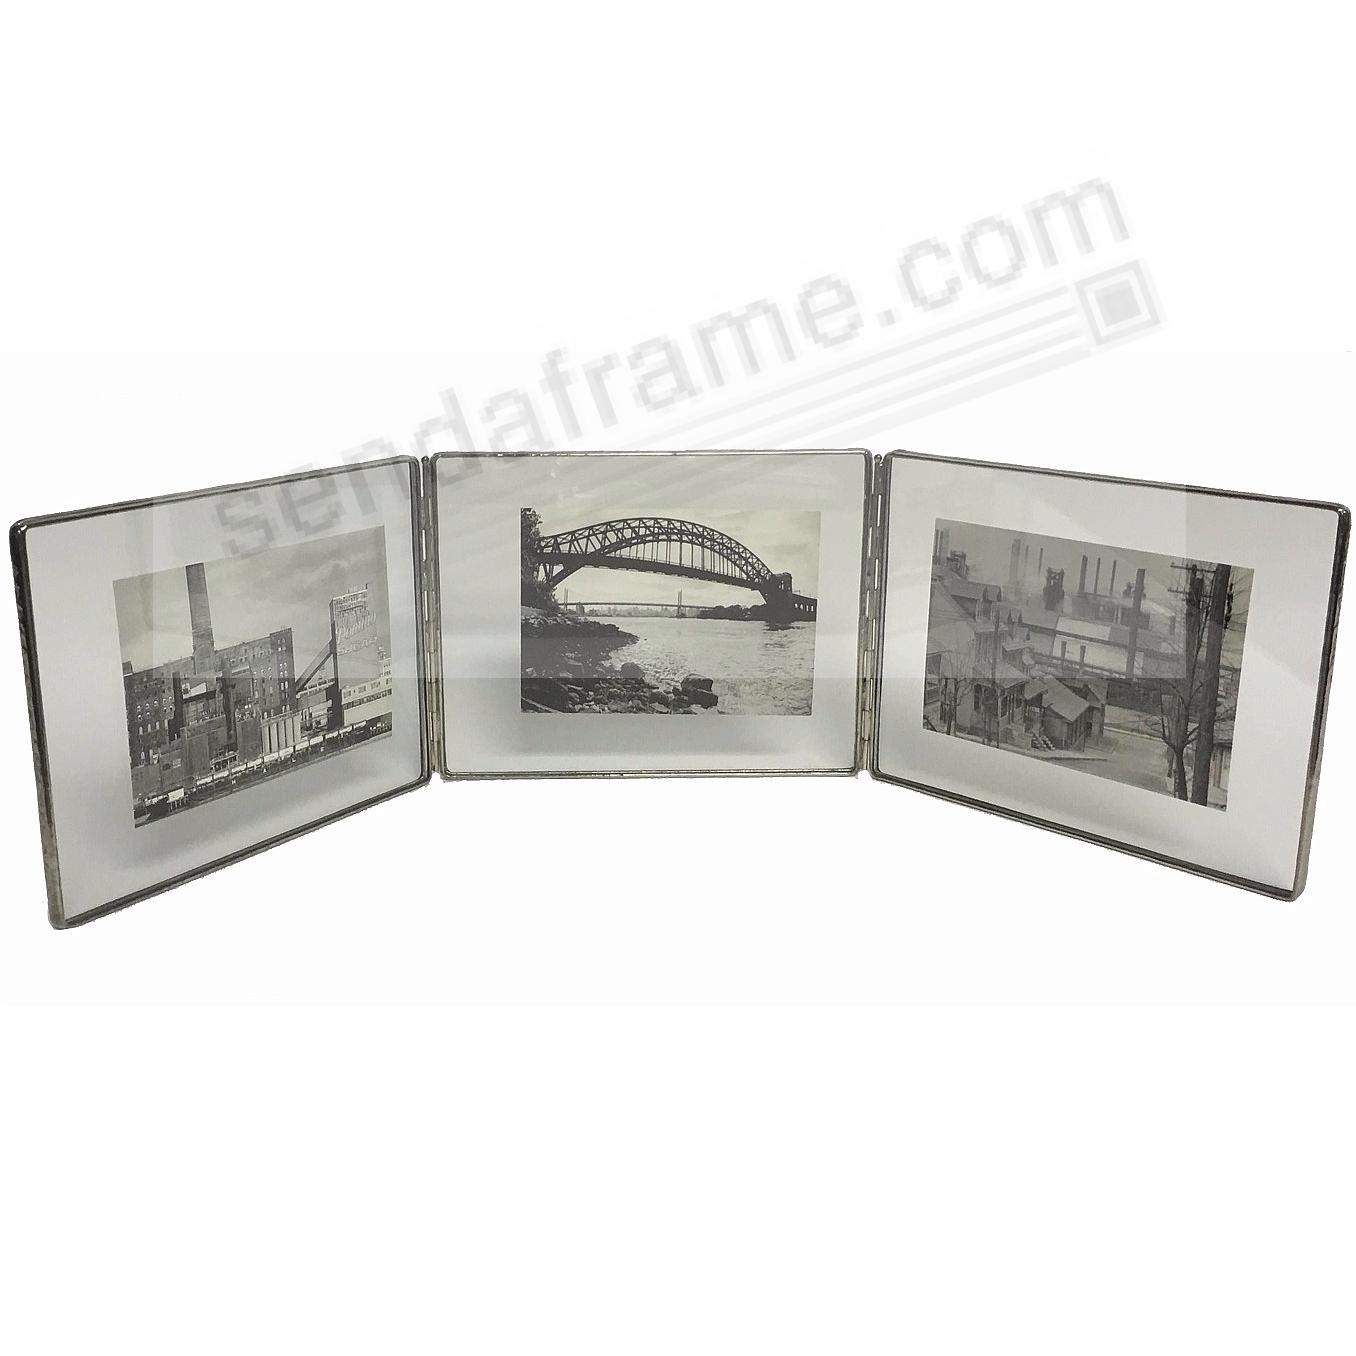 SILVER + Clear Glass Float Frame 9x7/7x5 Horz Hinged Triple by Bedford Downing®